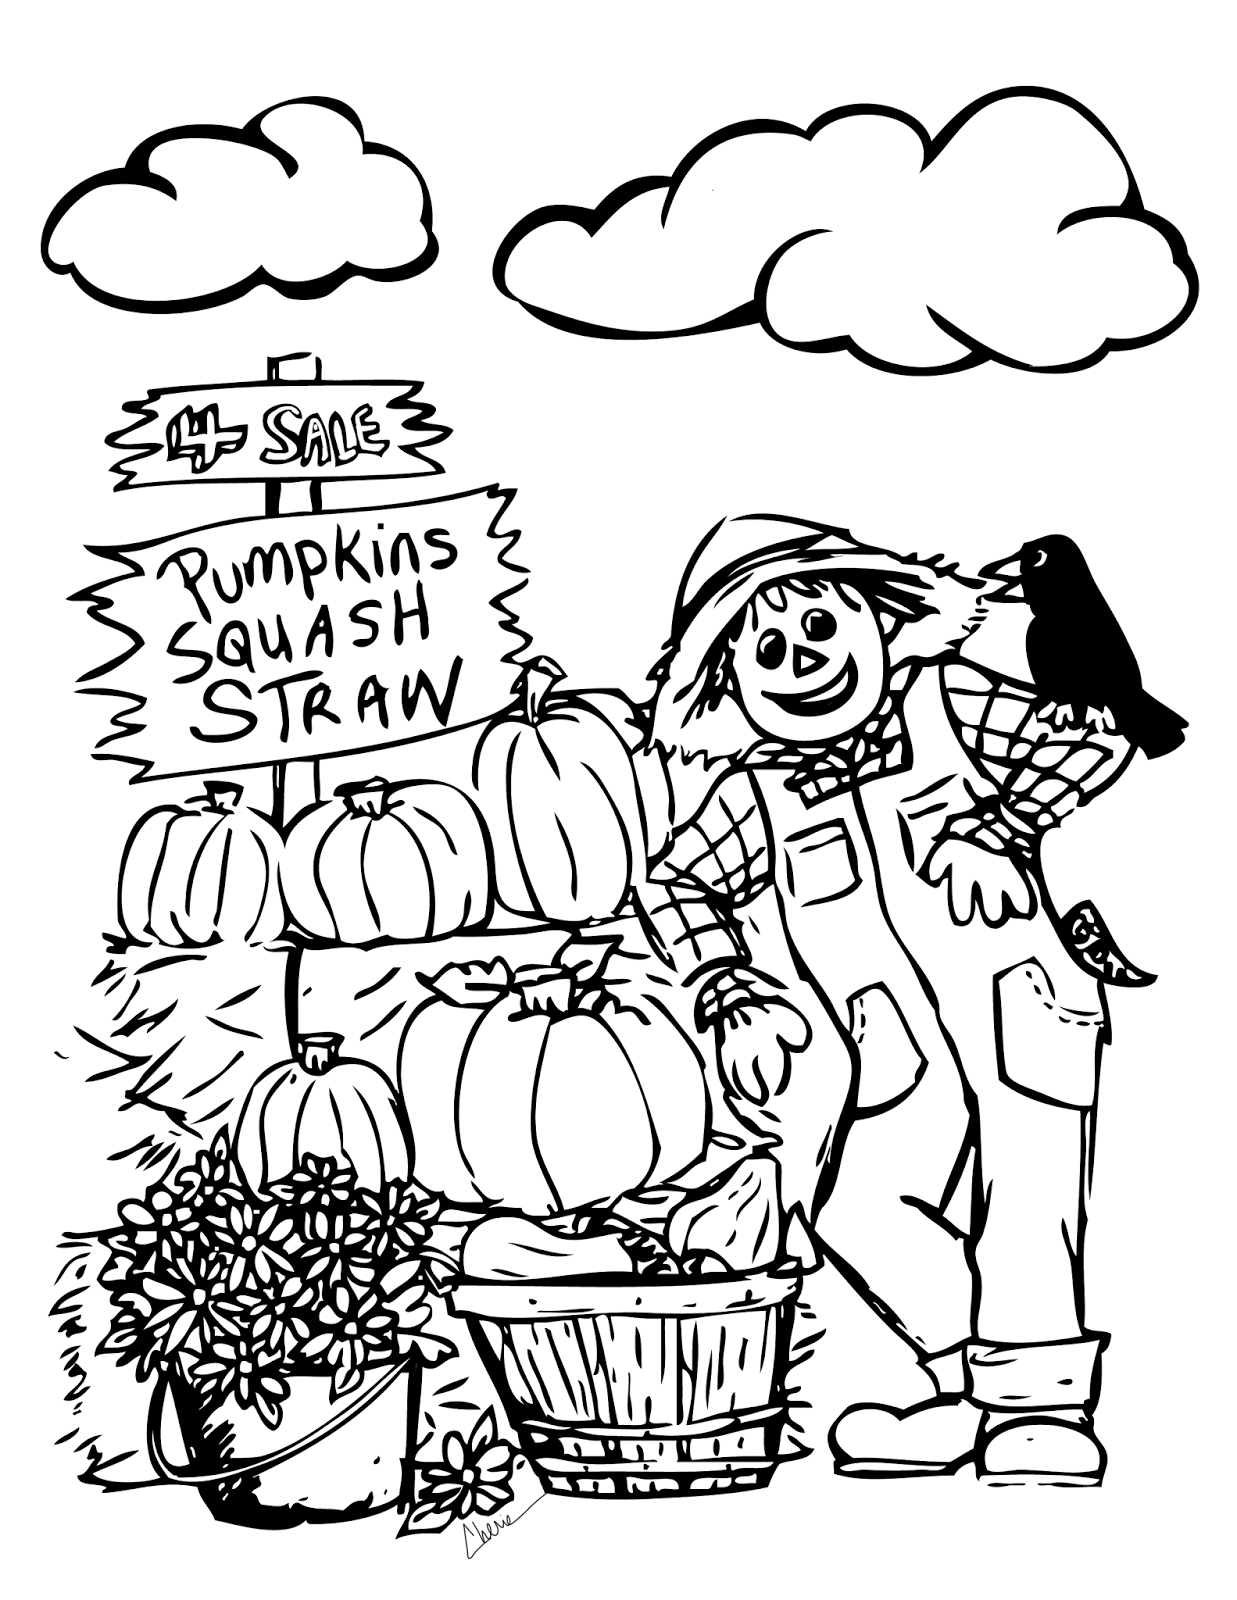 Coloring Pages Coloring Pages Fall Printable fall coloring pages free printable az 17 pictures for temoon us